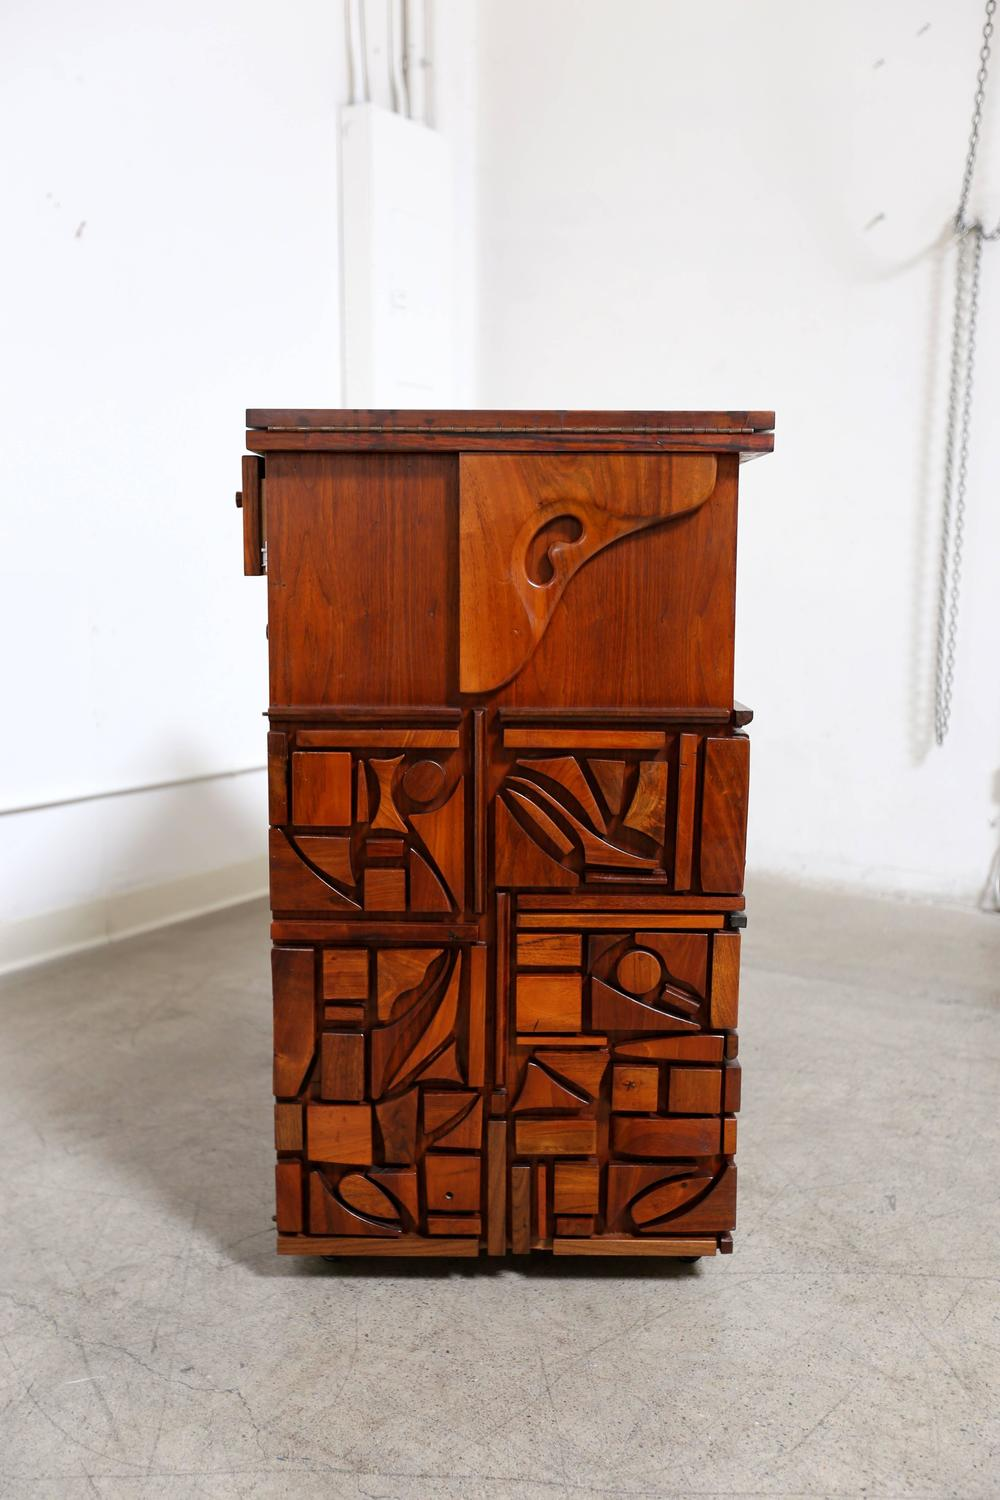 Studio Crafted Bar Cabinet By Artist Mabel Hutchinson For Sale At 1stdibs